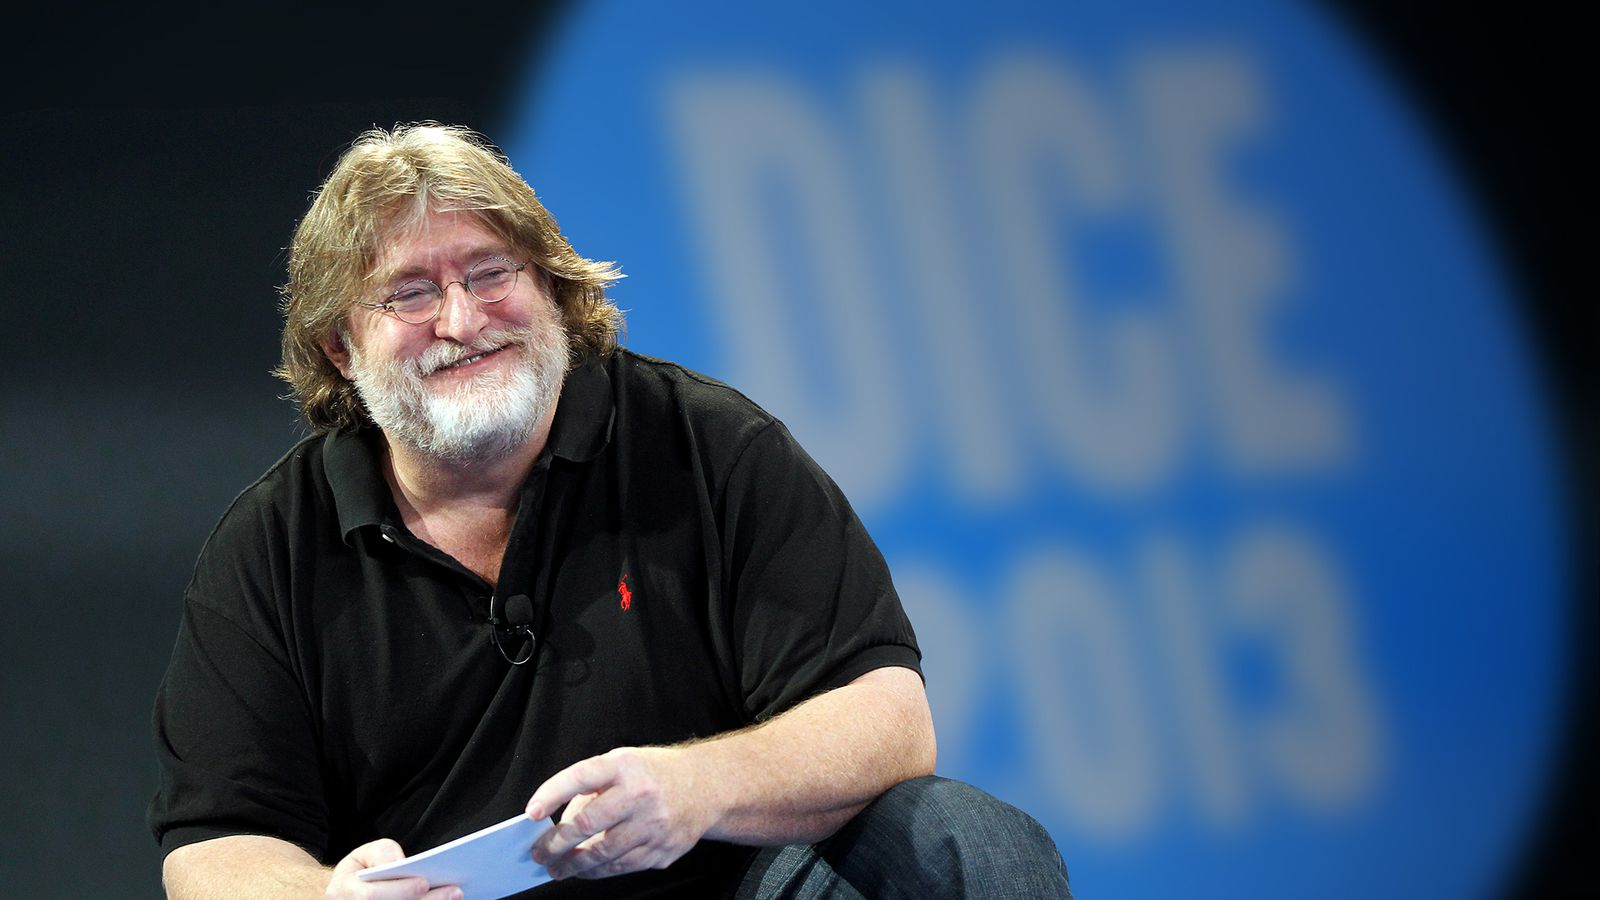 Gabe Newell isn't really here